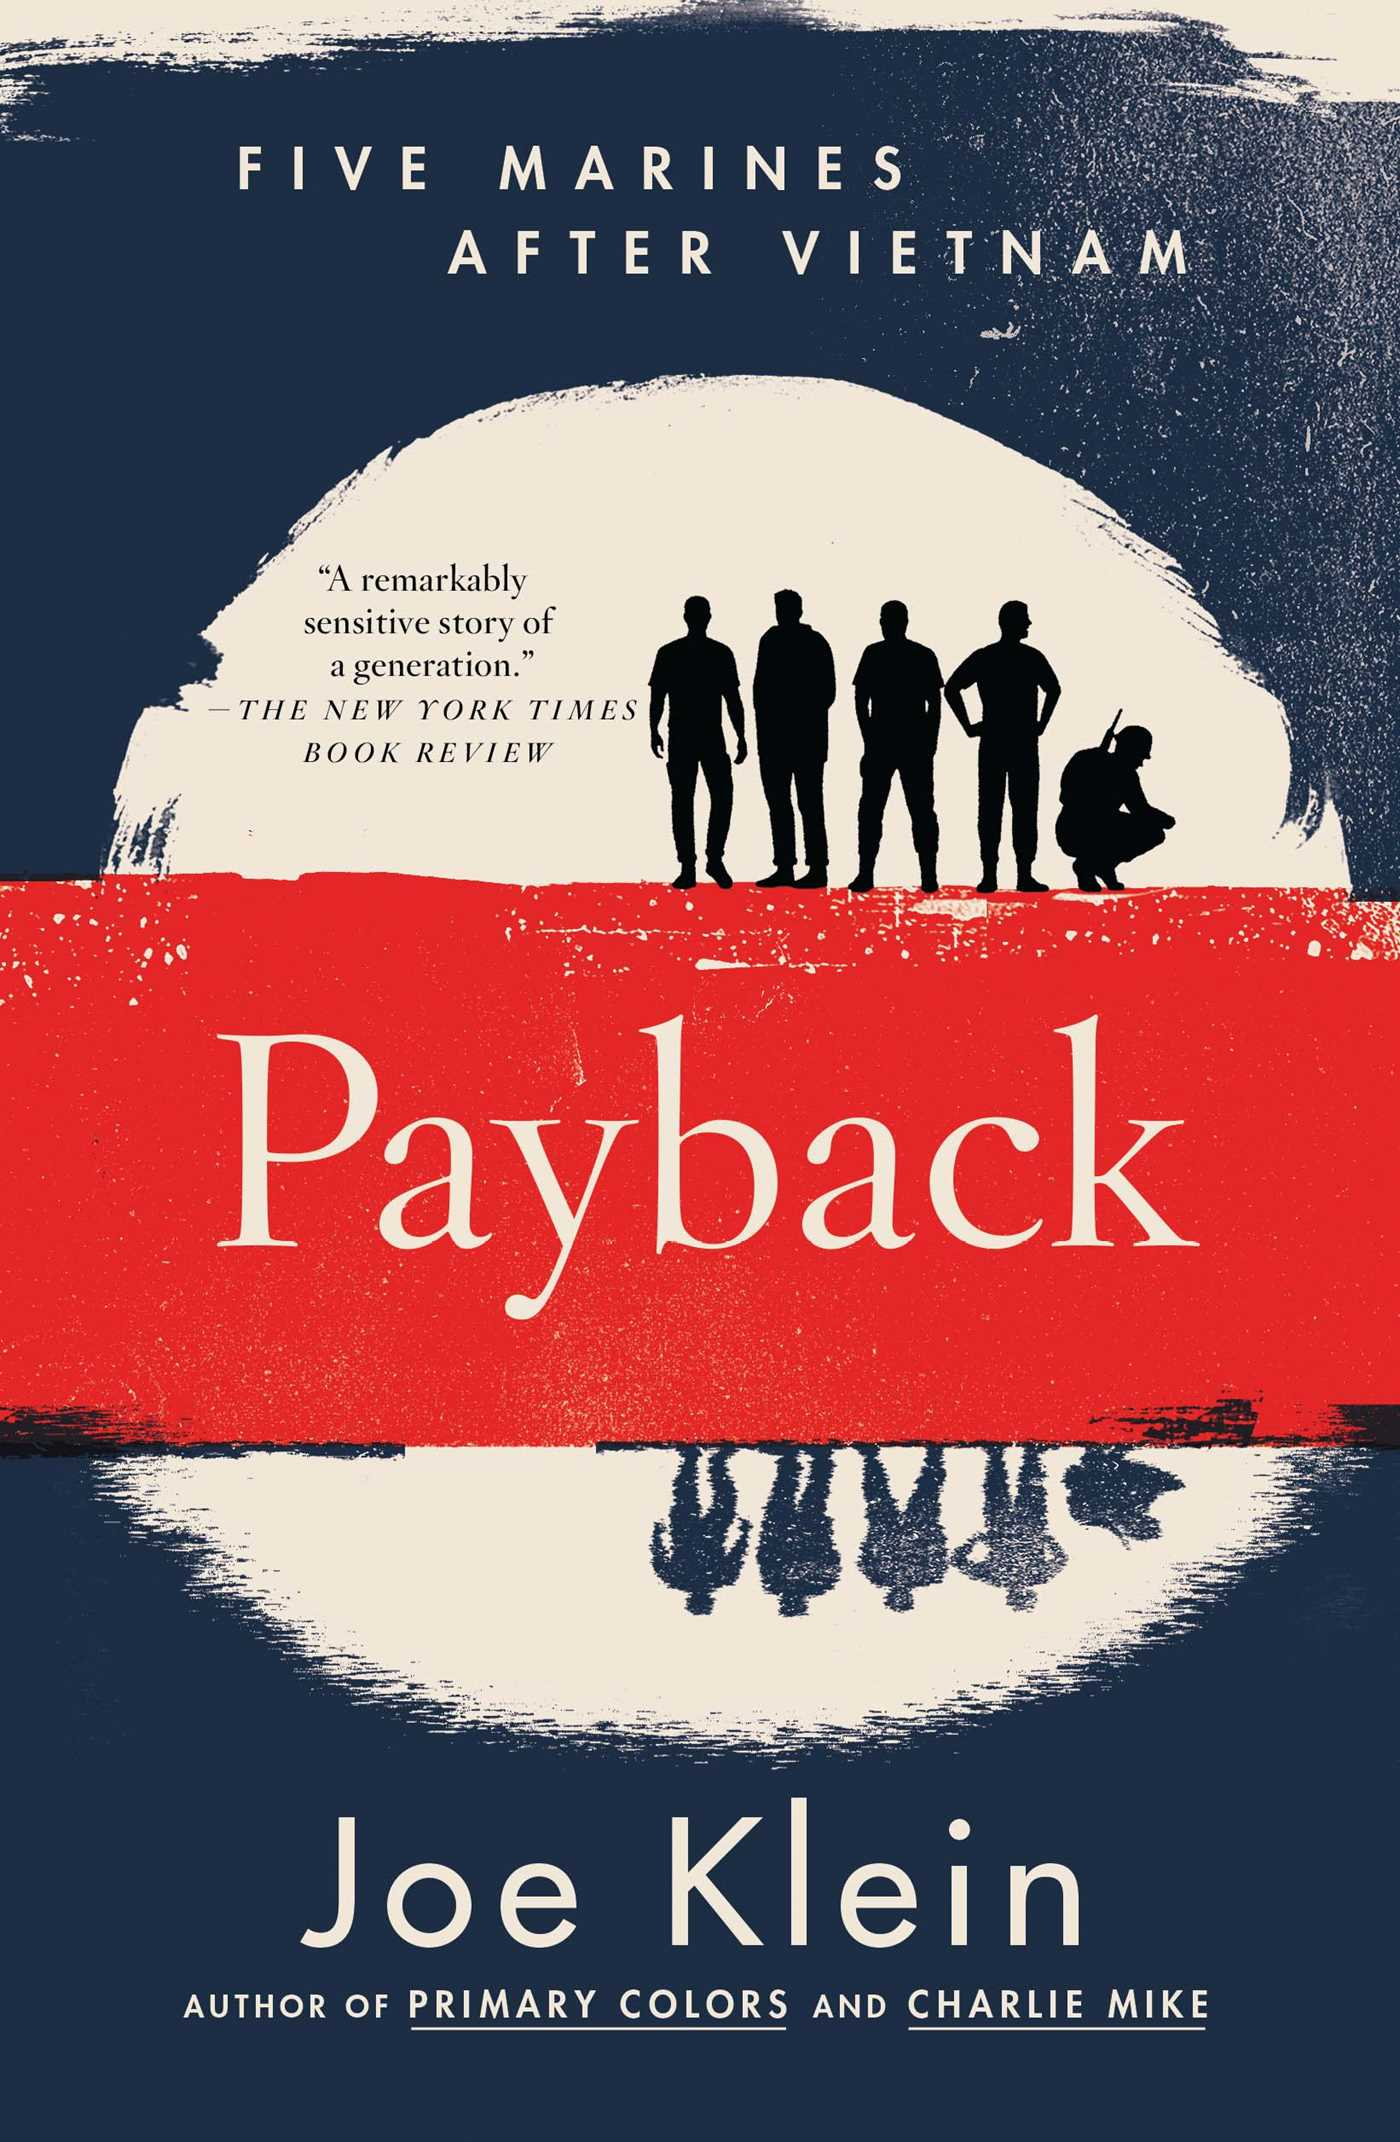 Payback eBook by Joe Klein   Official Publisher Page   Simon & Schuster